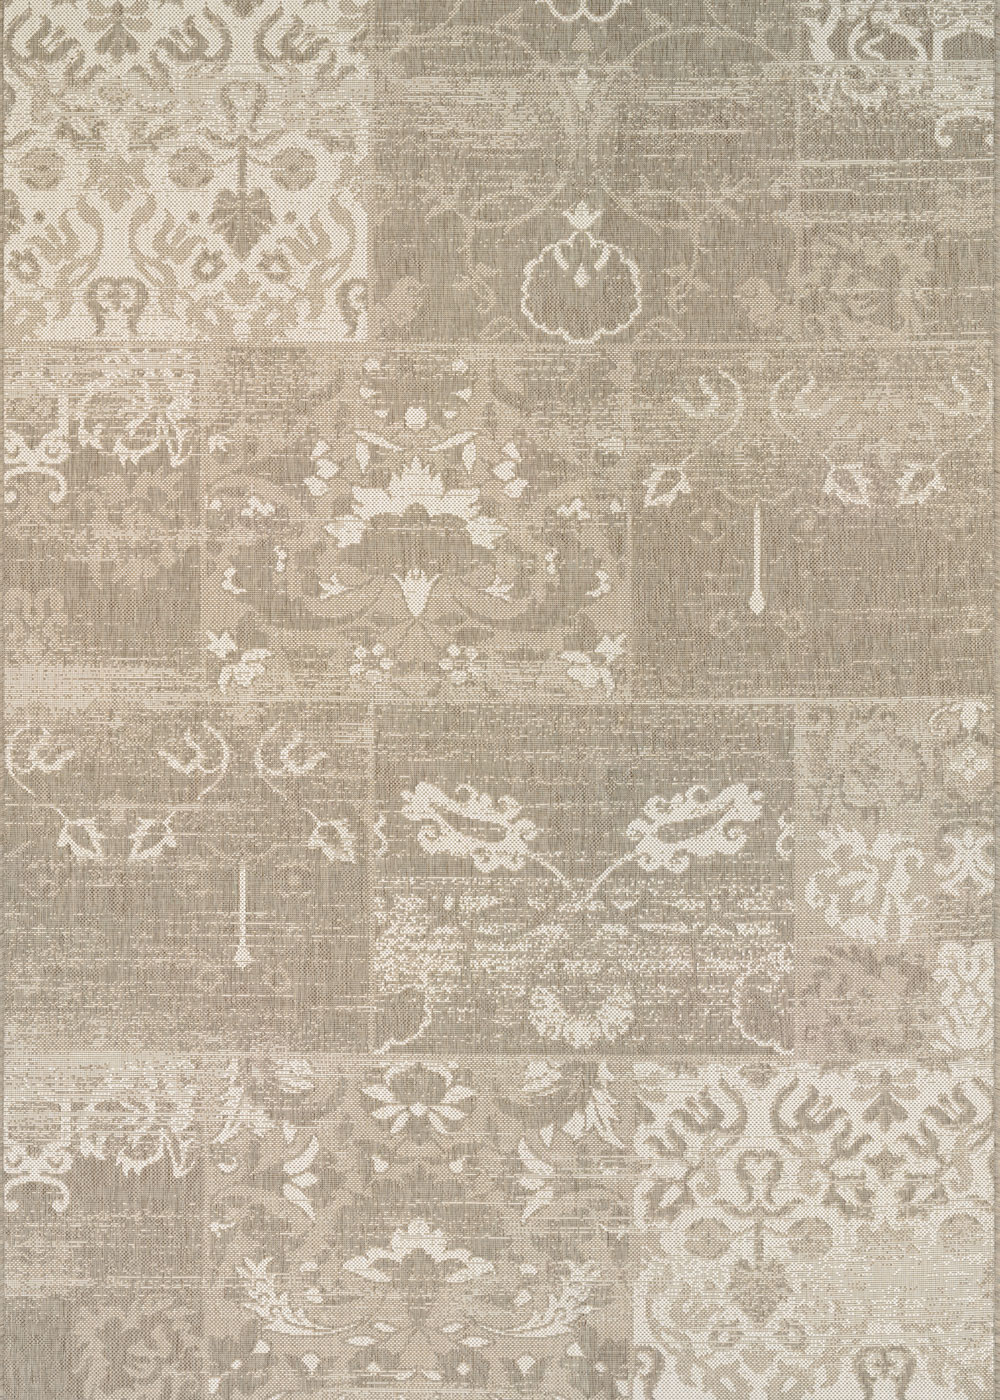 couristan AFUERA COUNTRY COTTAGE BEIGE/IVORY Rug